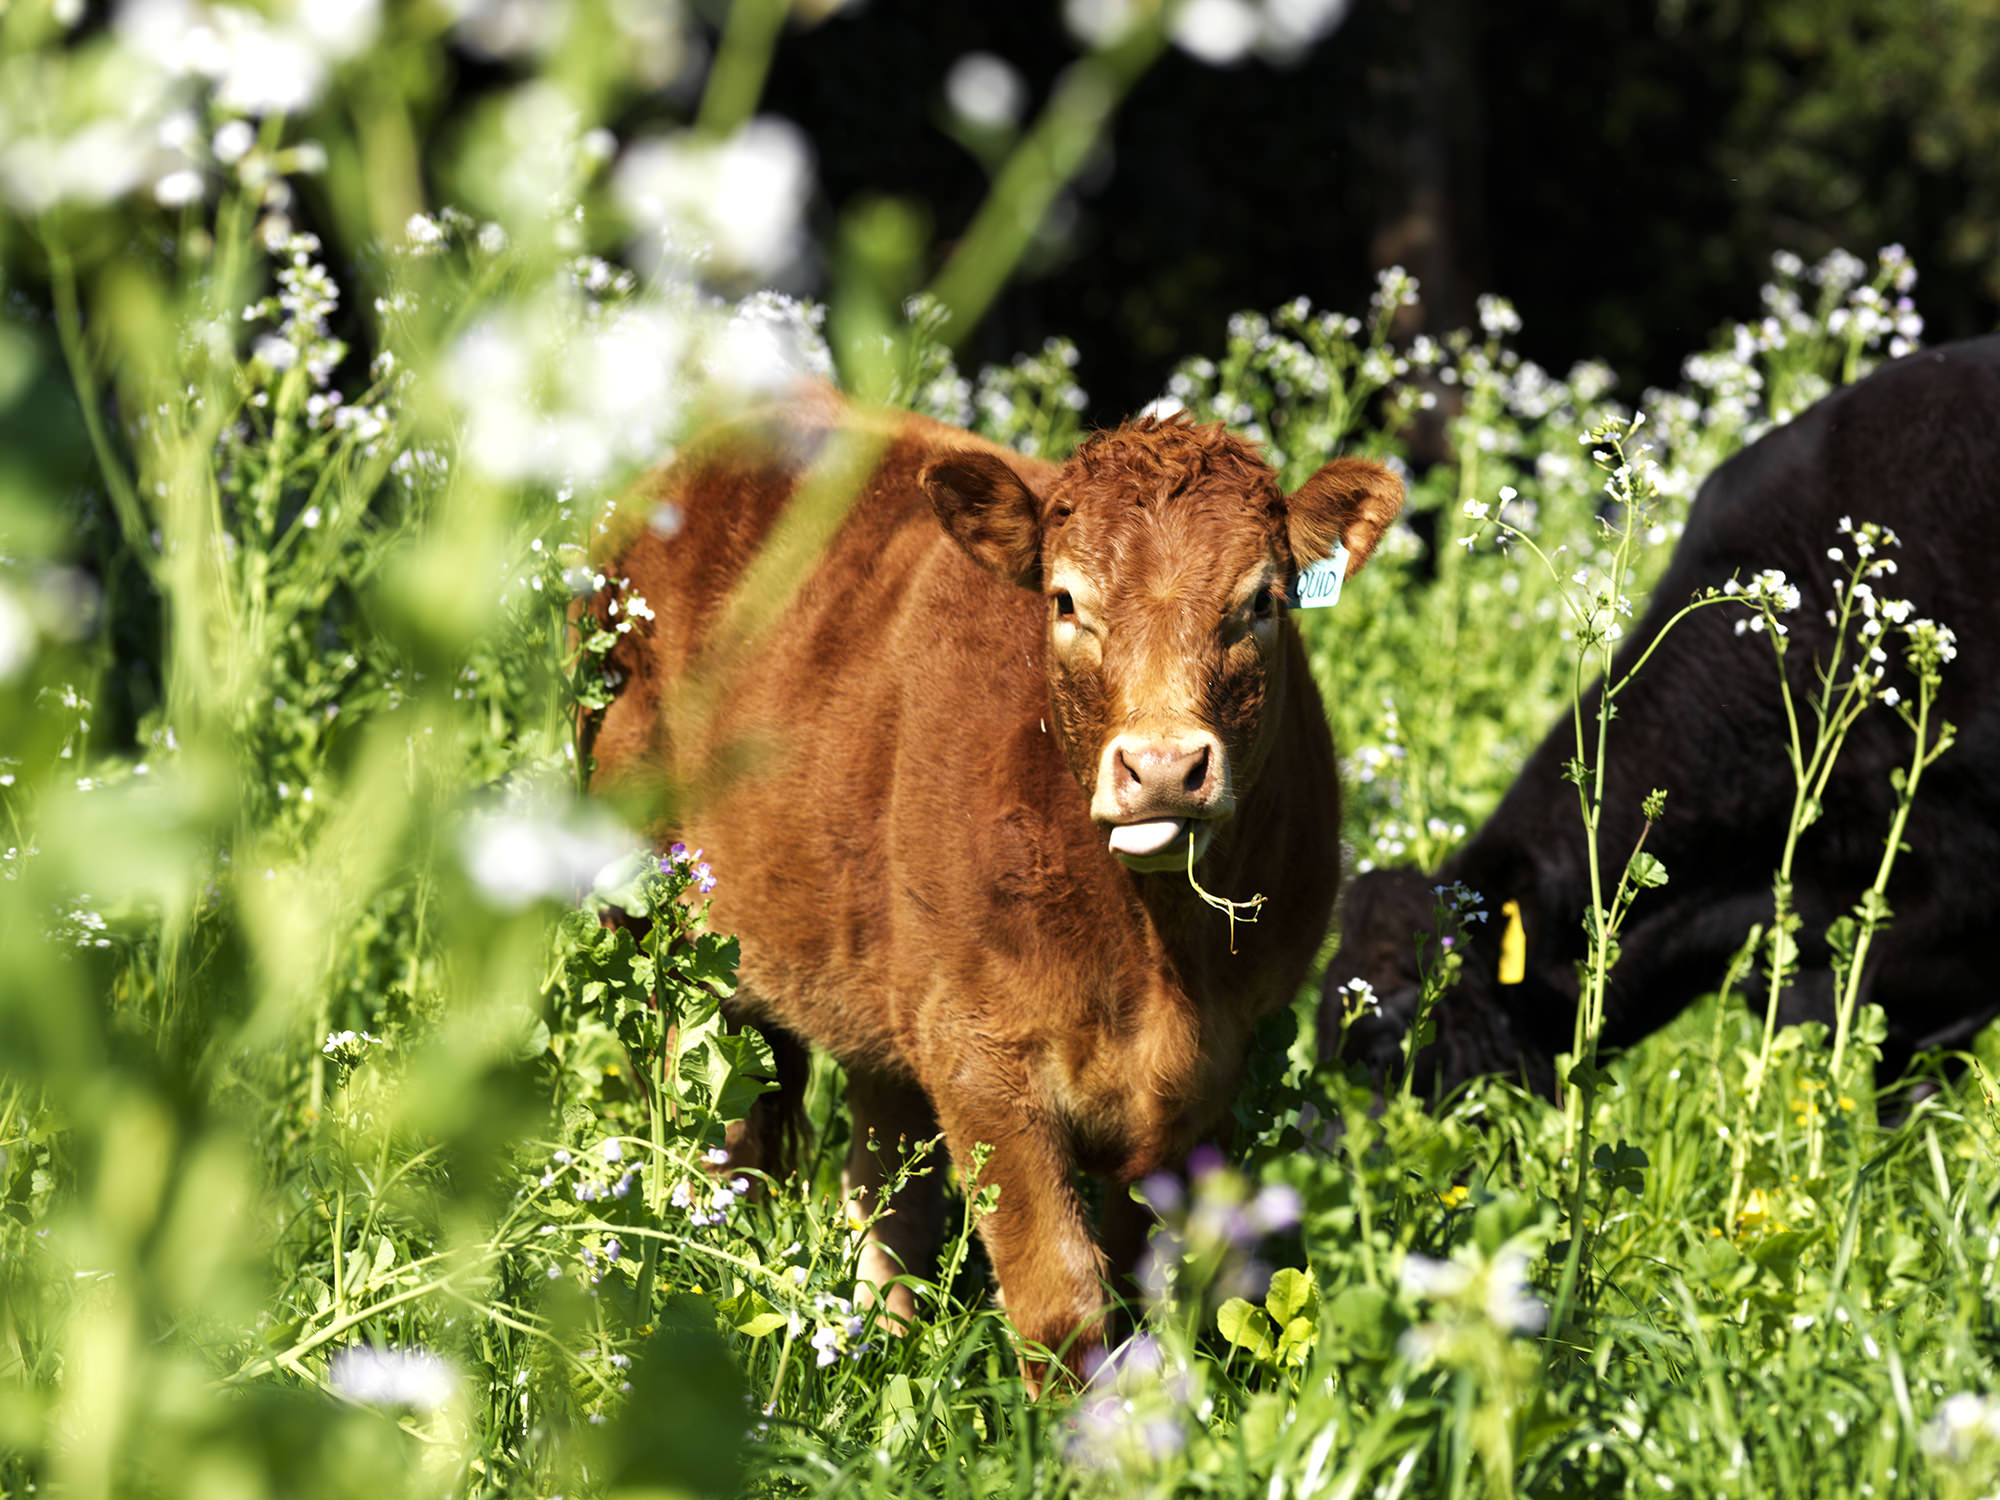 Pasture diversity gives cattle a broad diet while also improving soils and groundcover.